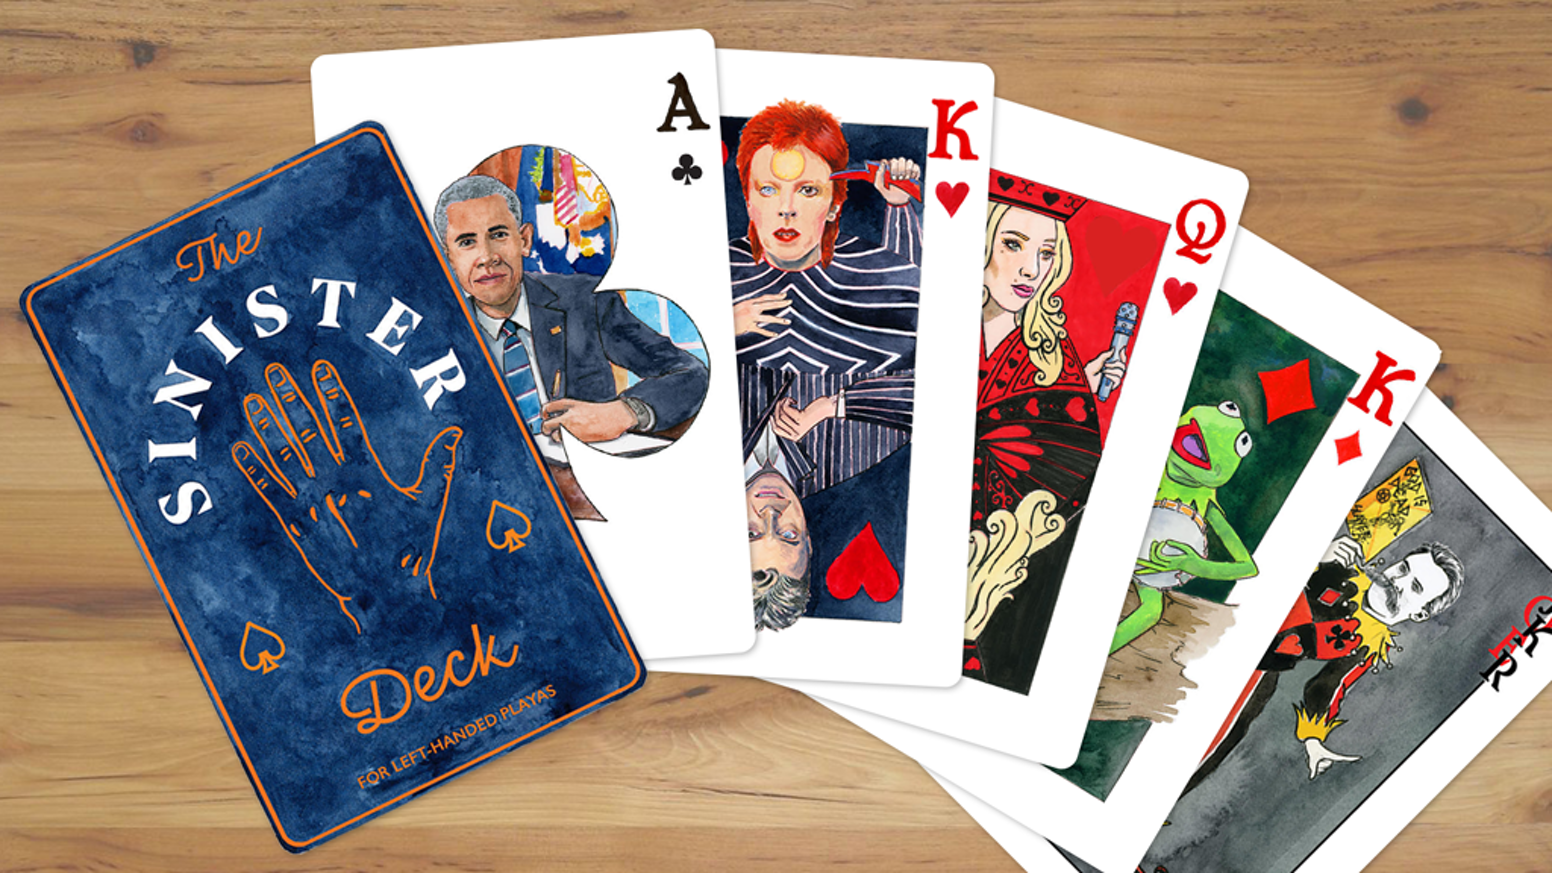 The Sinister Deck is a left-handed card deck that features famous left-handed people on the face cards.  Did you miss our campaign?  Click the button below to get your deck: